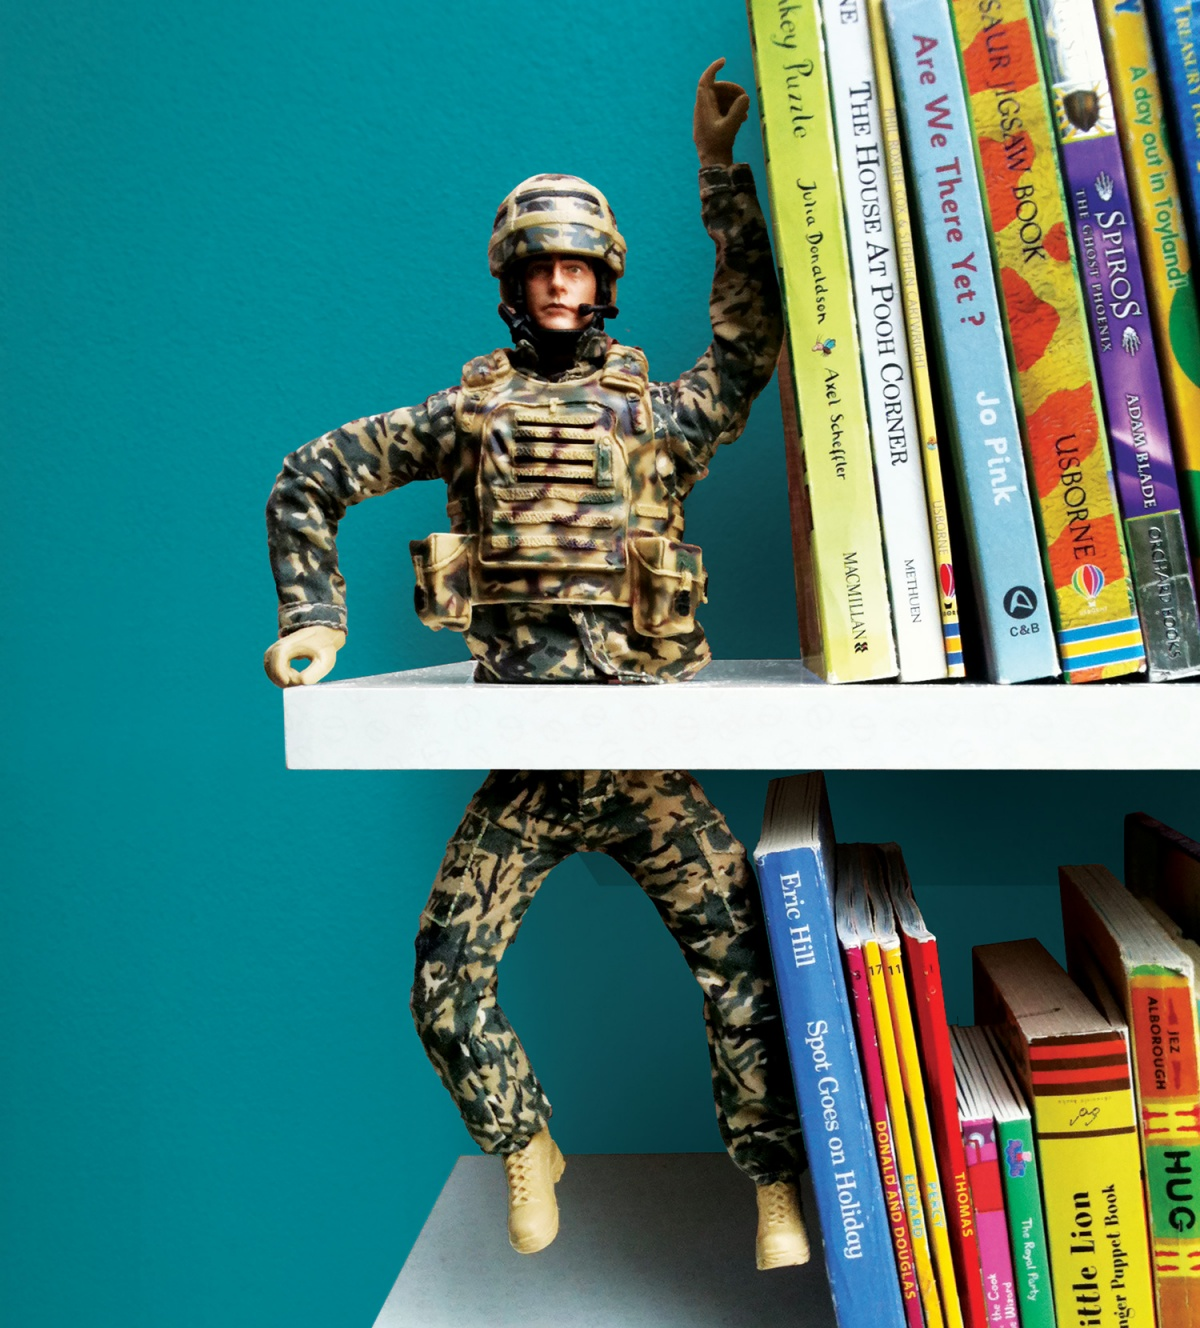 The action figure bookend